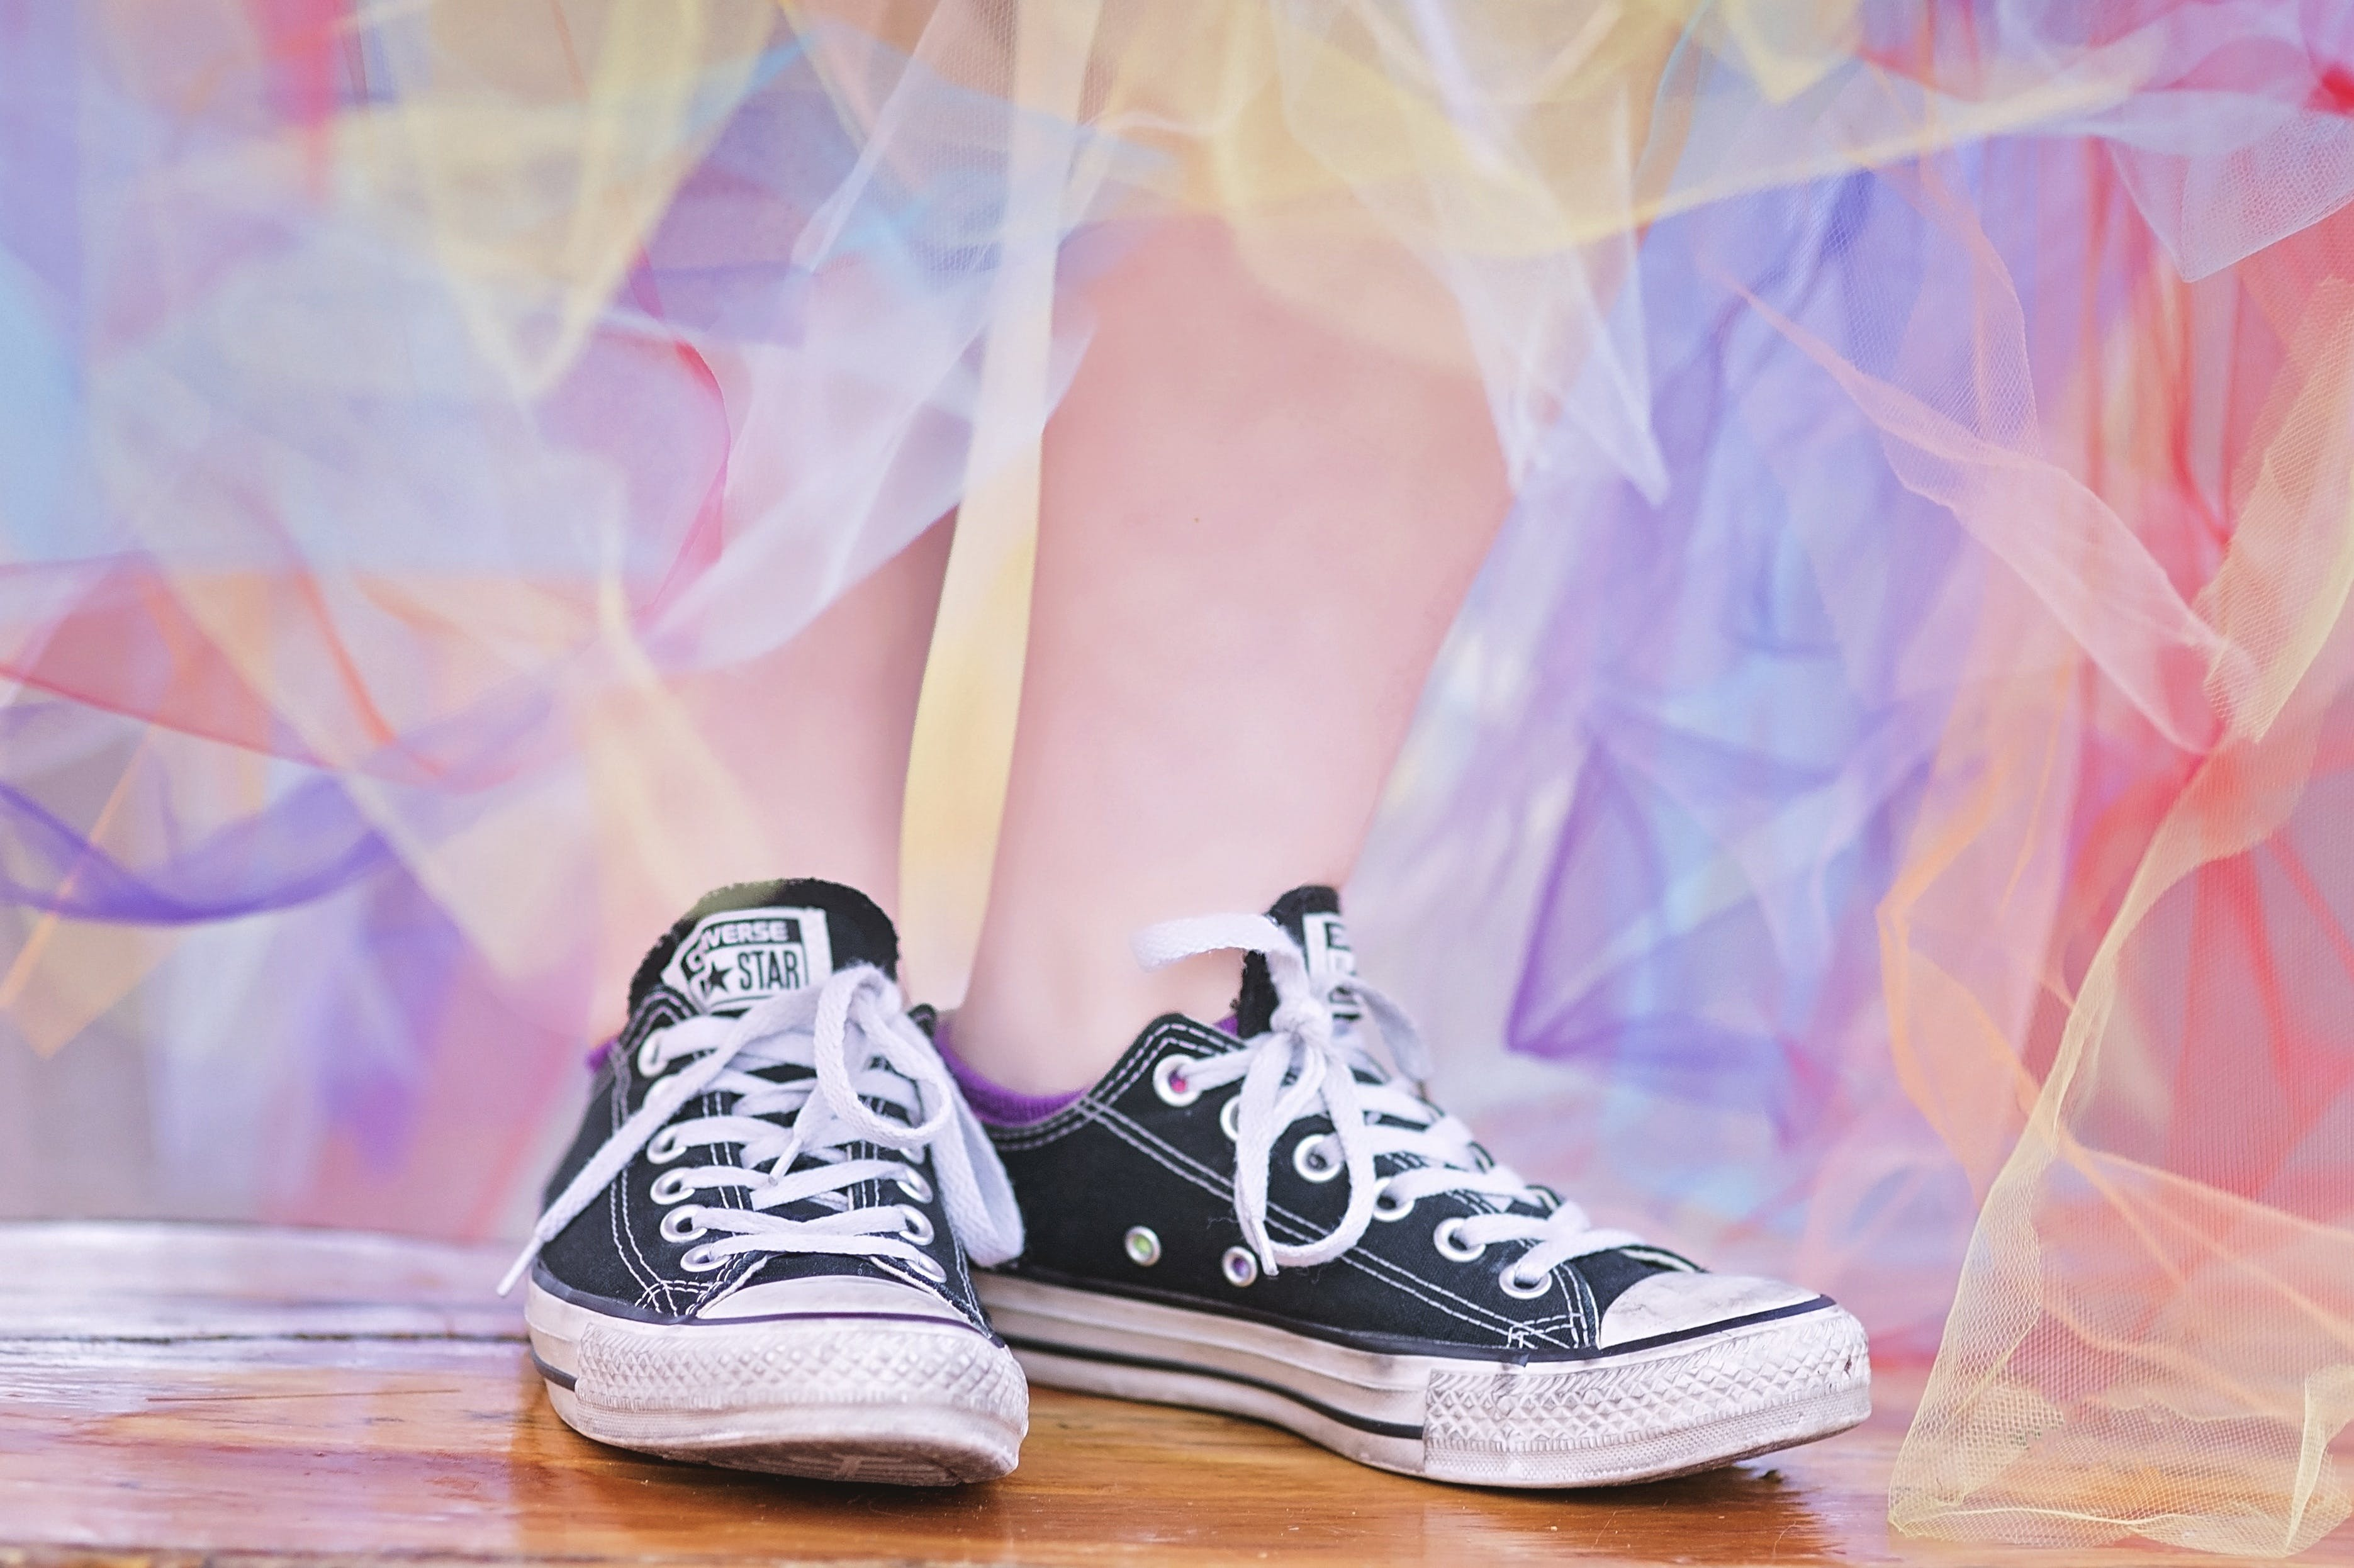 Pair of White-and-black Converse All-star Low-top Sneakers